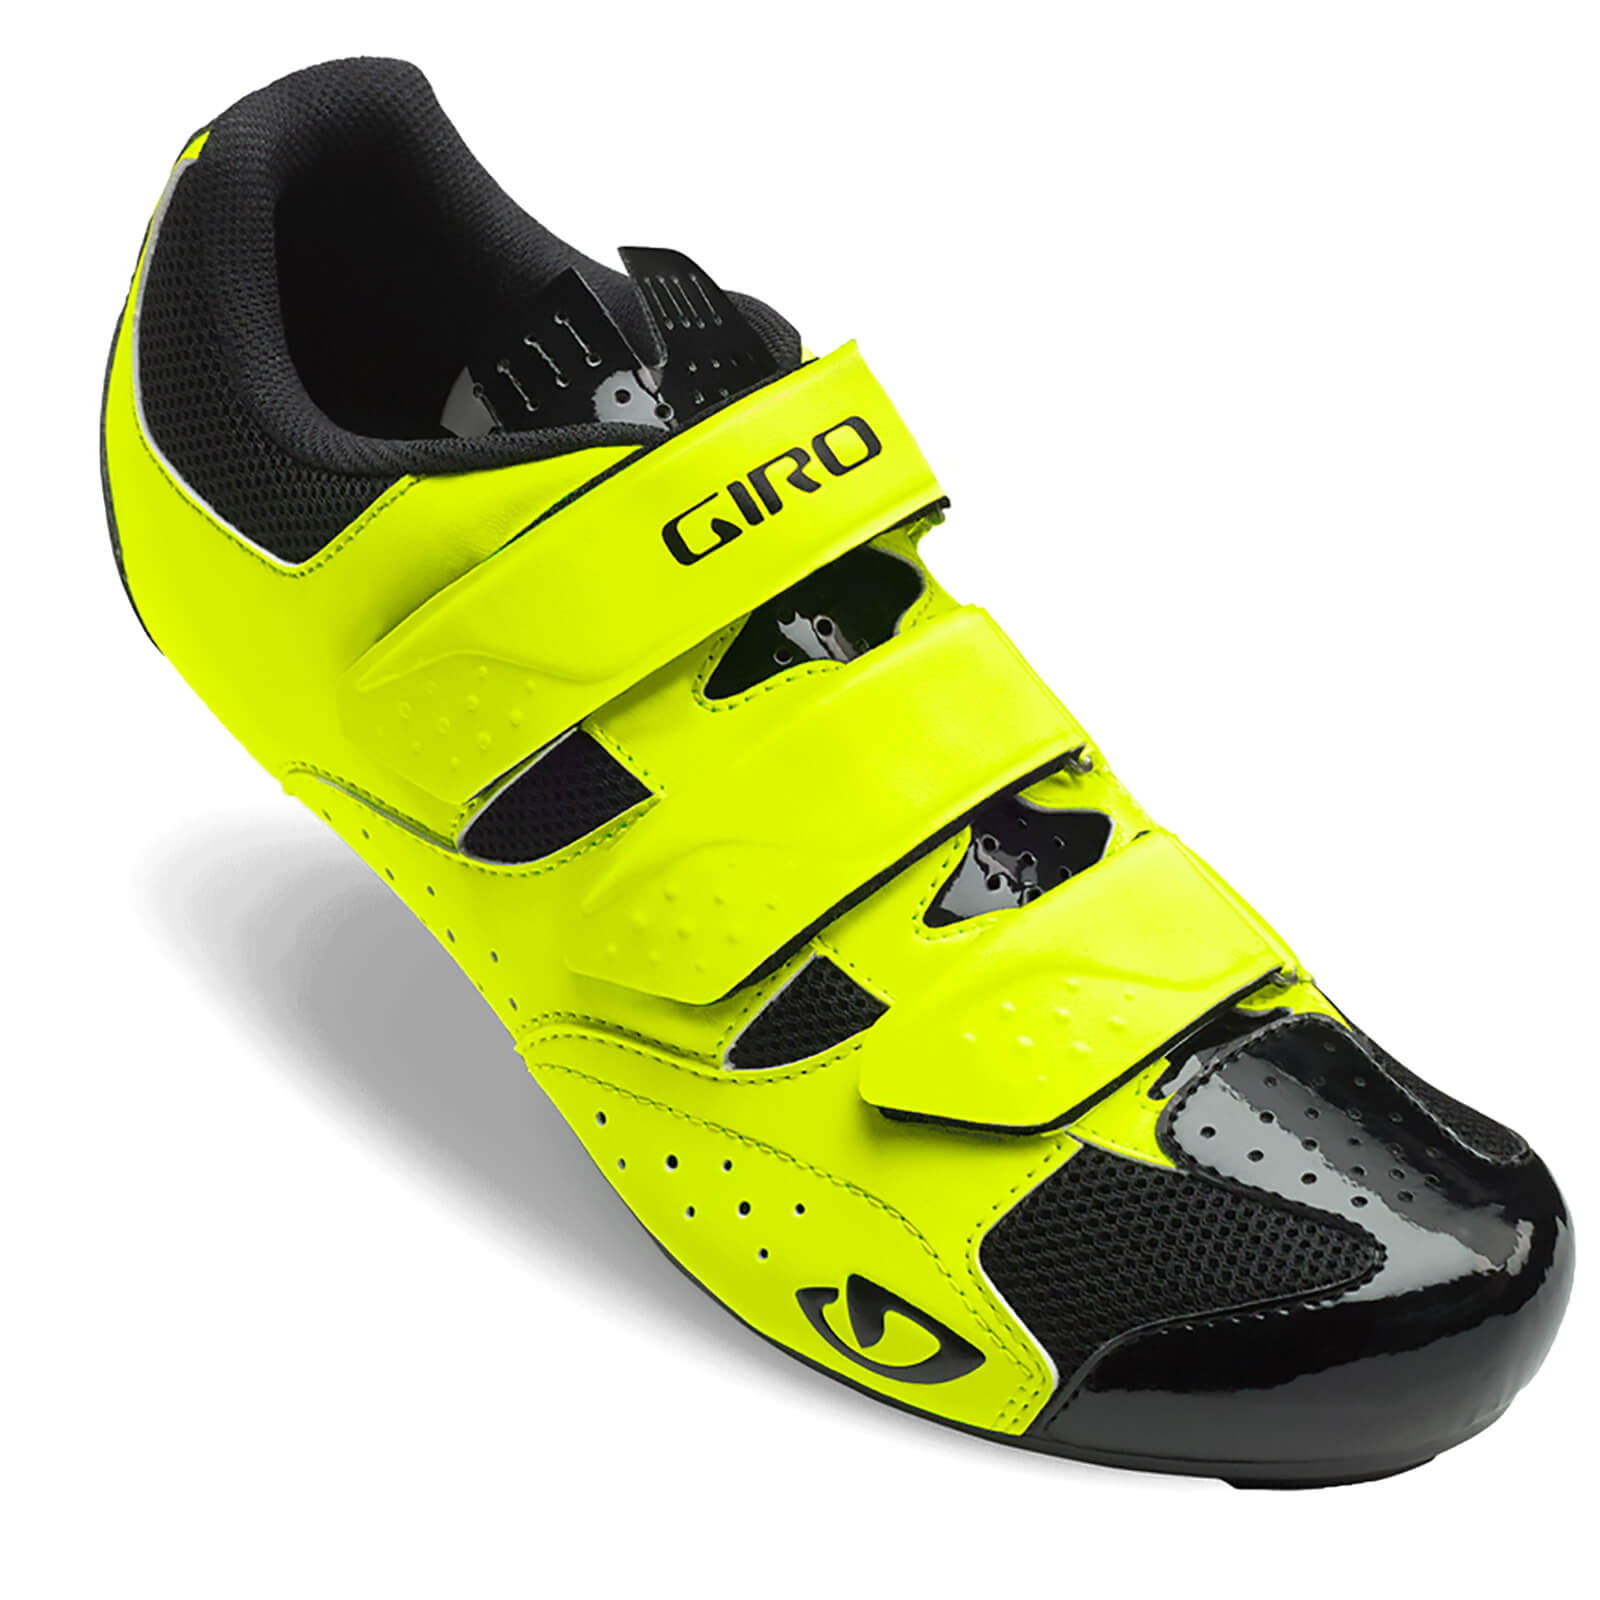 Giro Techne Road Cycling Shoes - Highlight Yellow